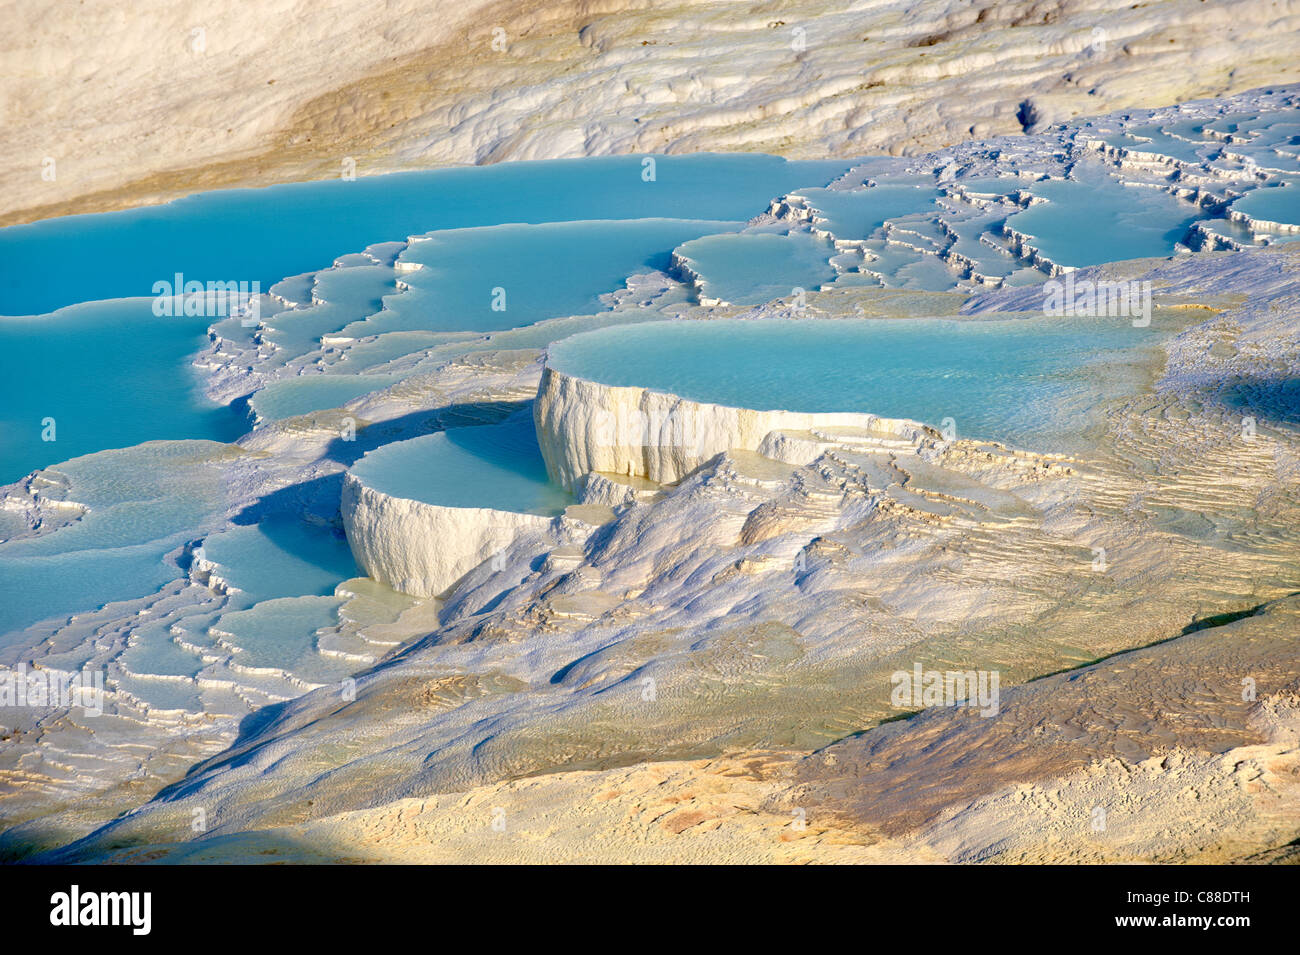 Pamukkale travetine terrace water cascades, composed of white Calcium carbonate rock formations, Pamukkale, Turkey - Stock Image